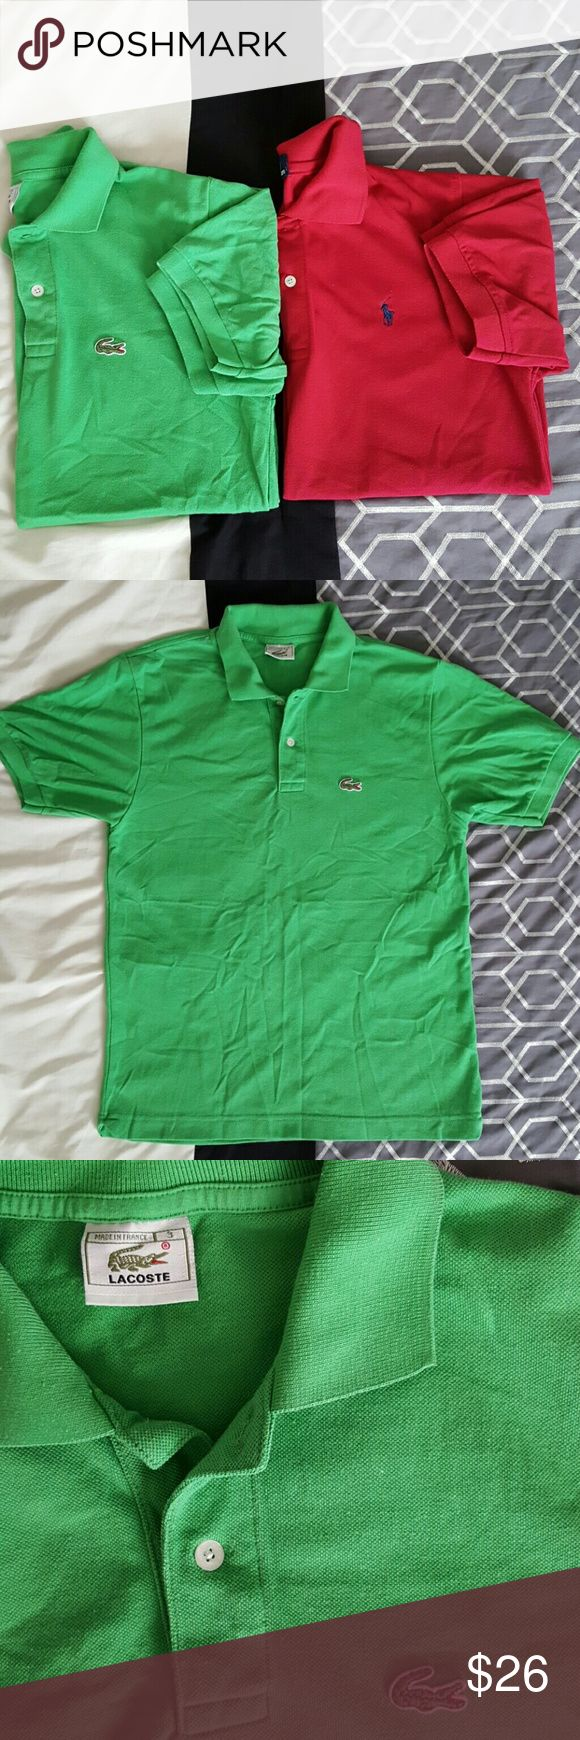 Bundled Men's Polo shirts Size small Sold as bundle Small Lacoste green Polo Shirt. Small Ralph Lauren Polo Shirt. Both in excellent used condition. Lacoste Shirts Polos